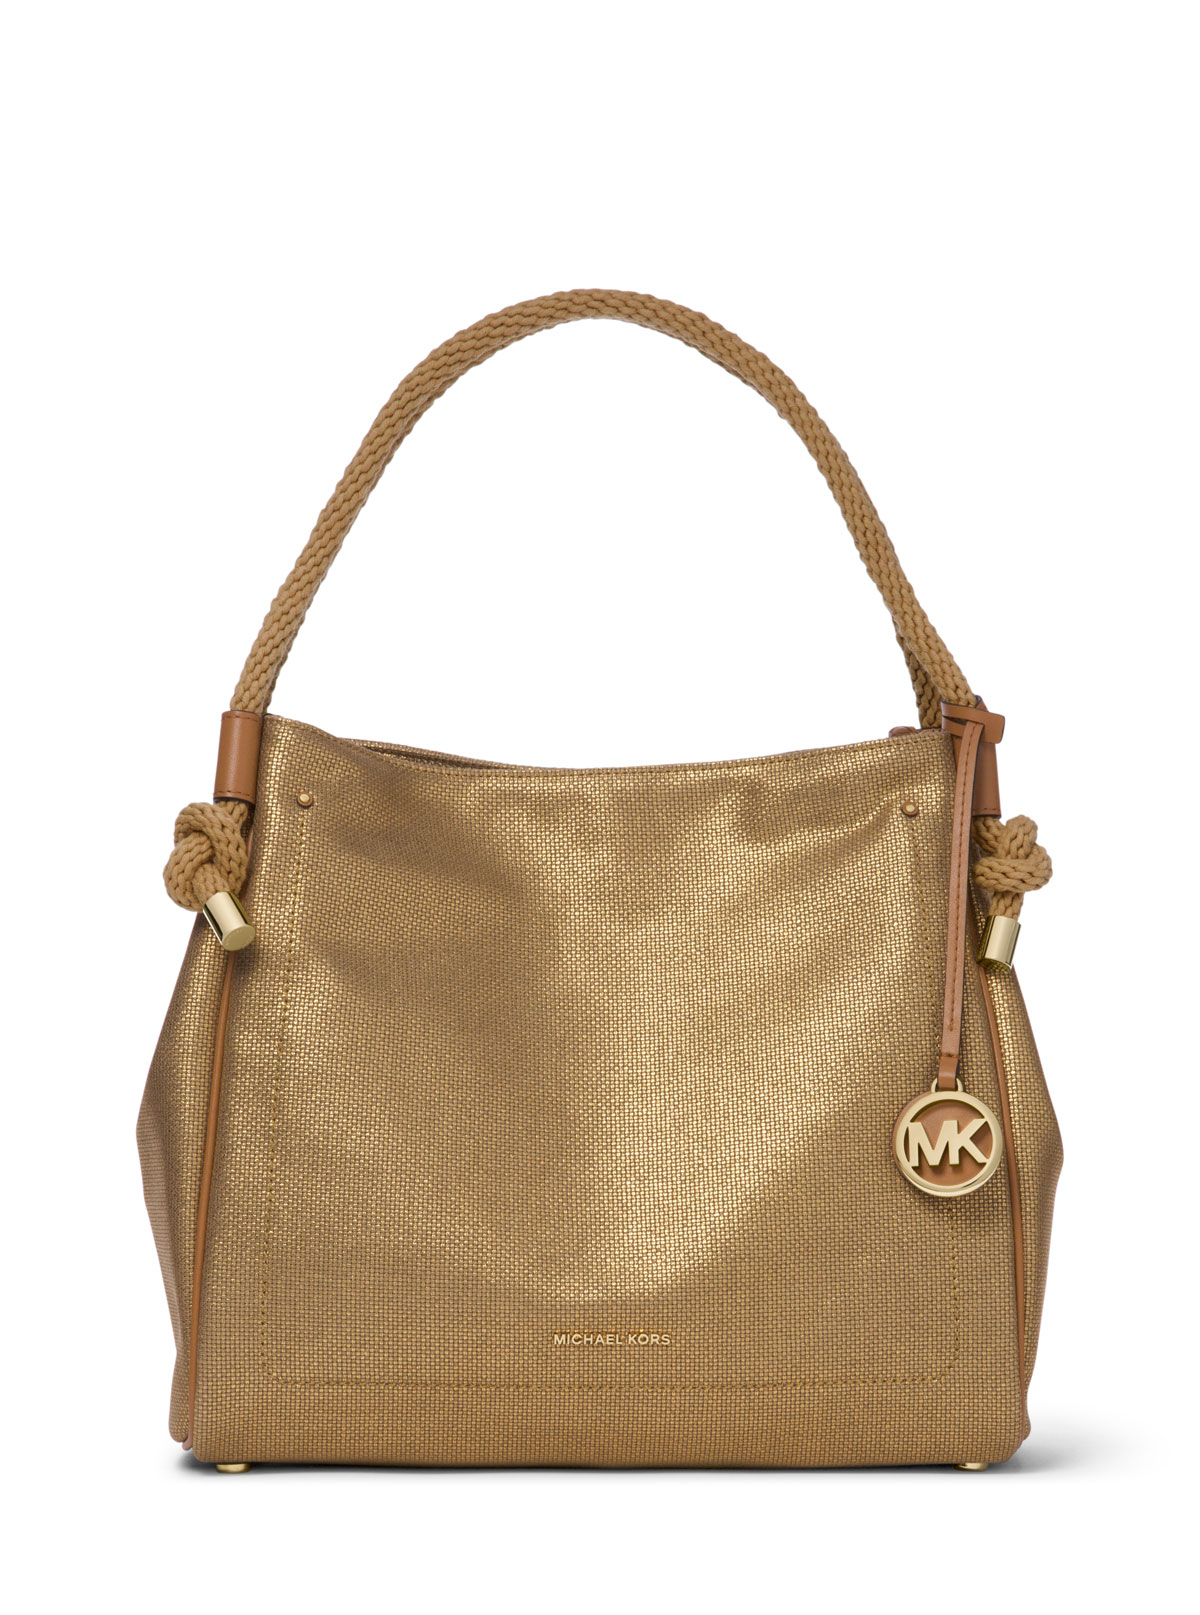 3fd30fd0eae88 MICHAEL Michael Kors Isla Large Metallic Leather Tote Bag